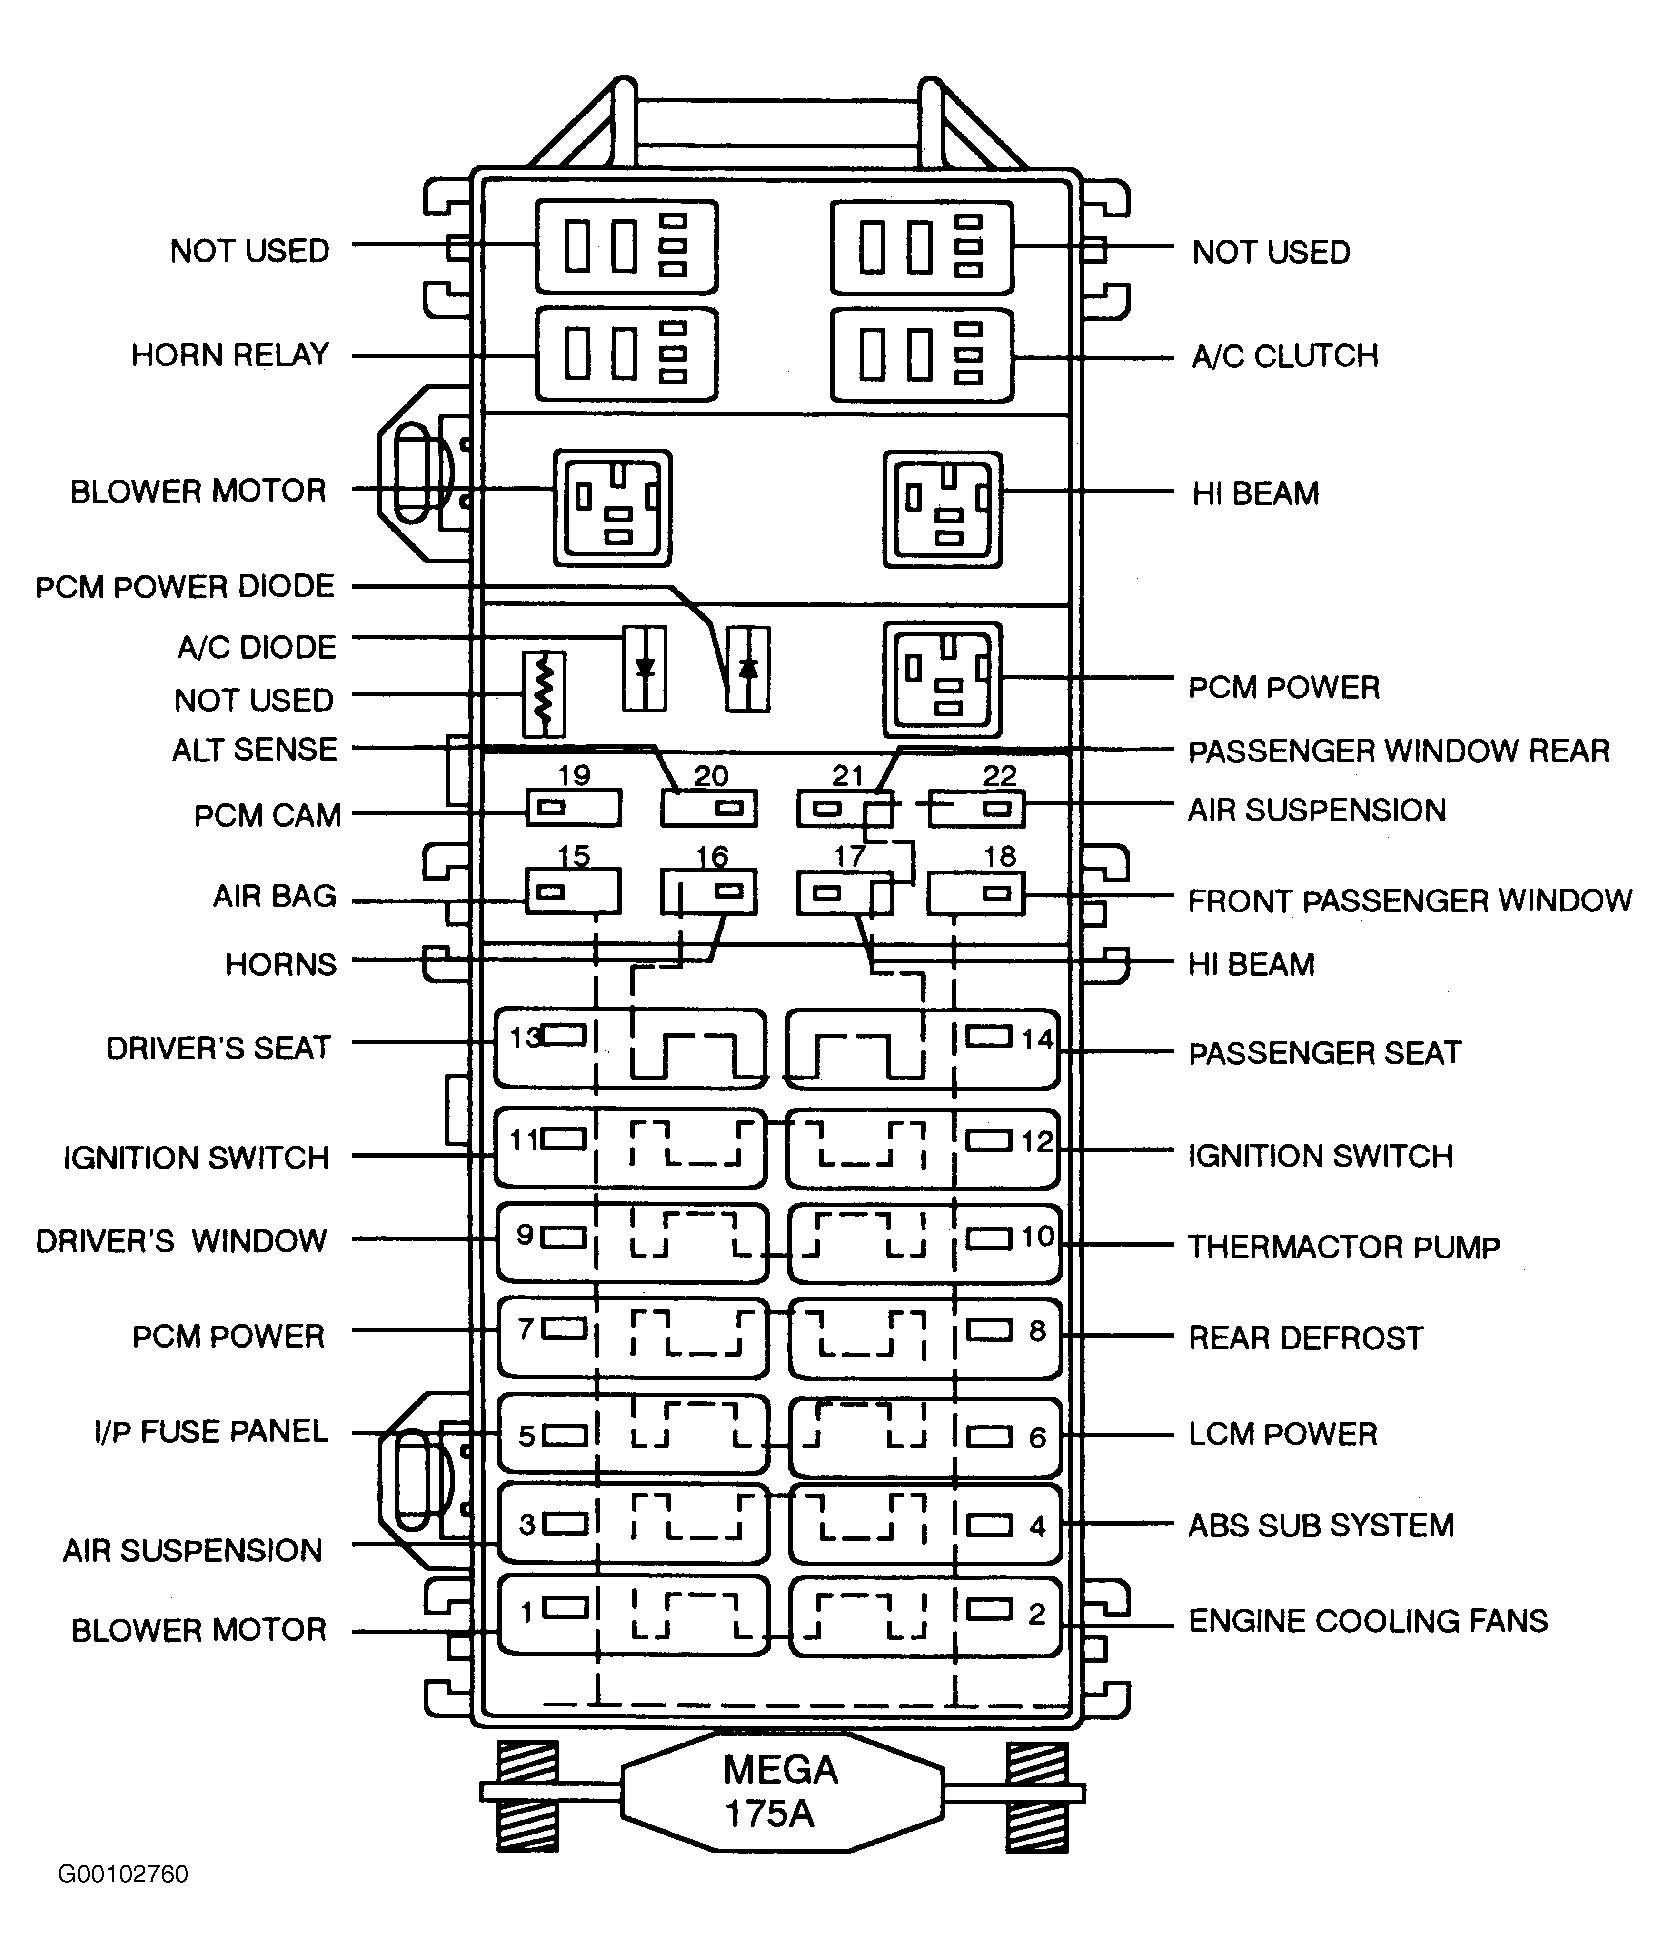 Car Engine Diagram And Explanation.Fuse Box For 2003 Lincoln Town Car M7 Wiring Diagram